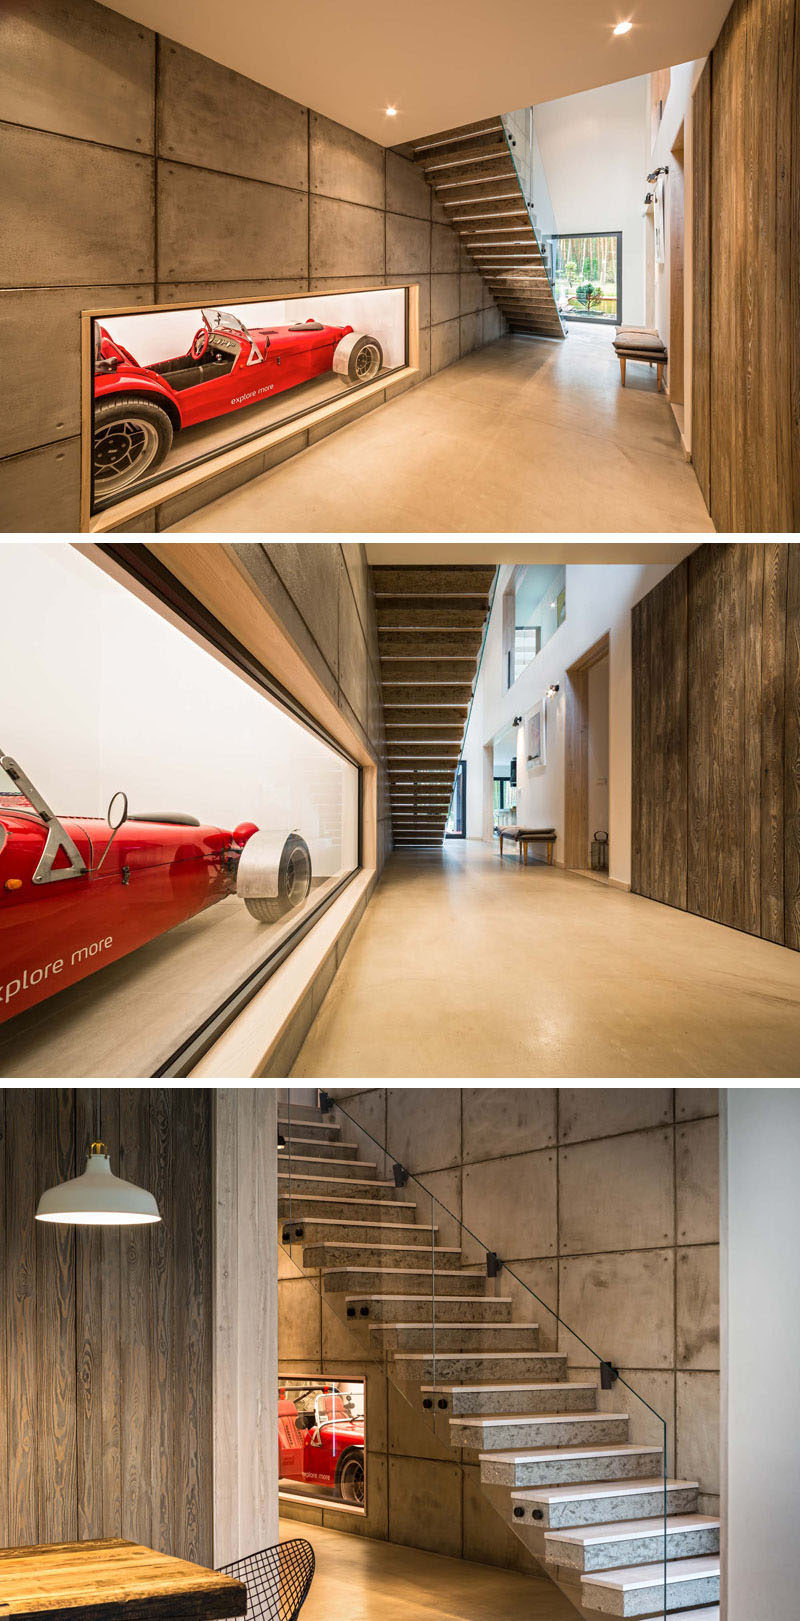 Inside this home, the entry hallway has an unexpected surprise. Embedded within the concrete wall of the home and displayed behind glass is a little red race car.